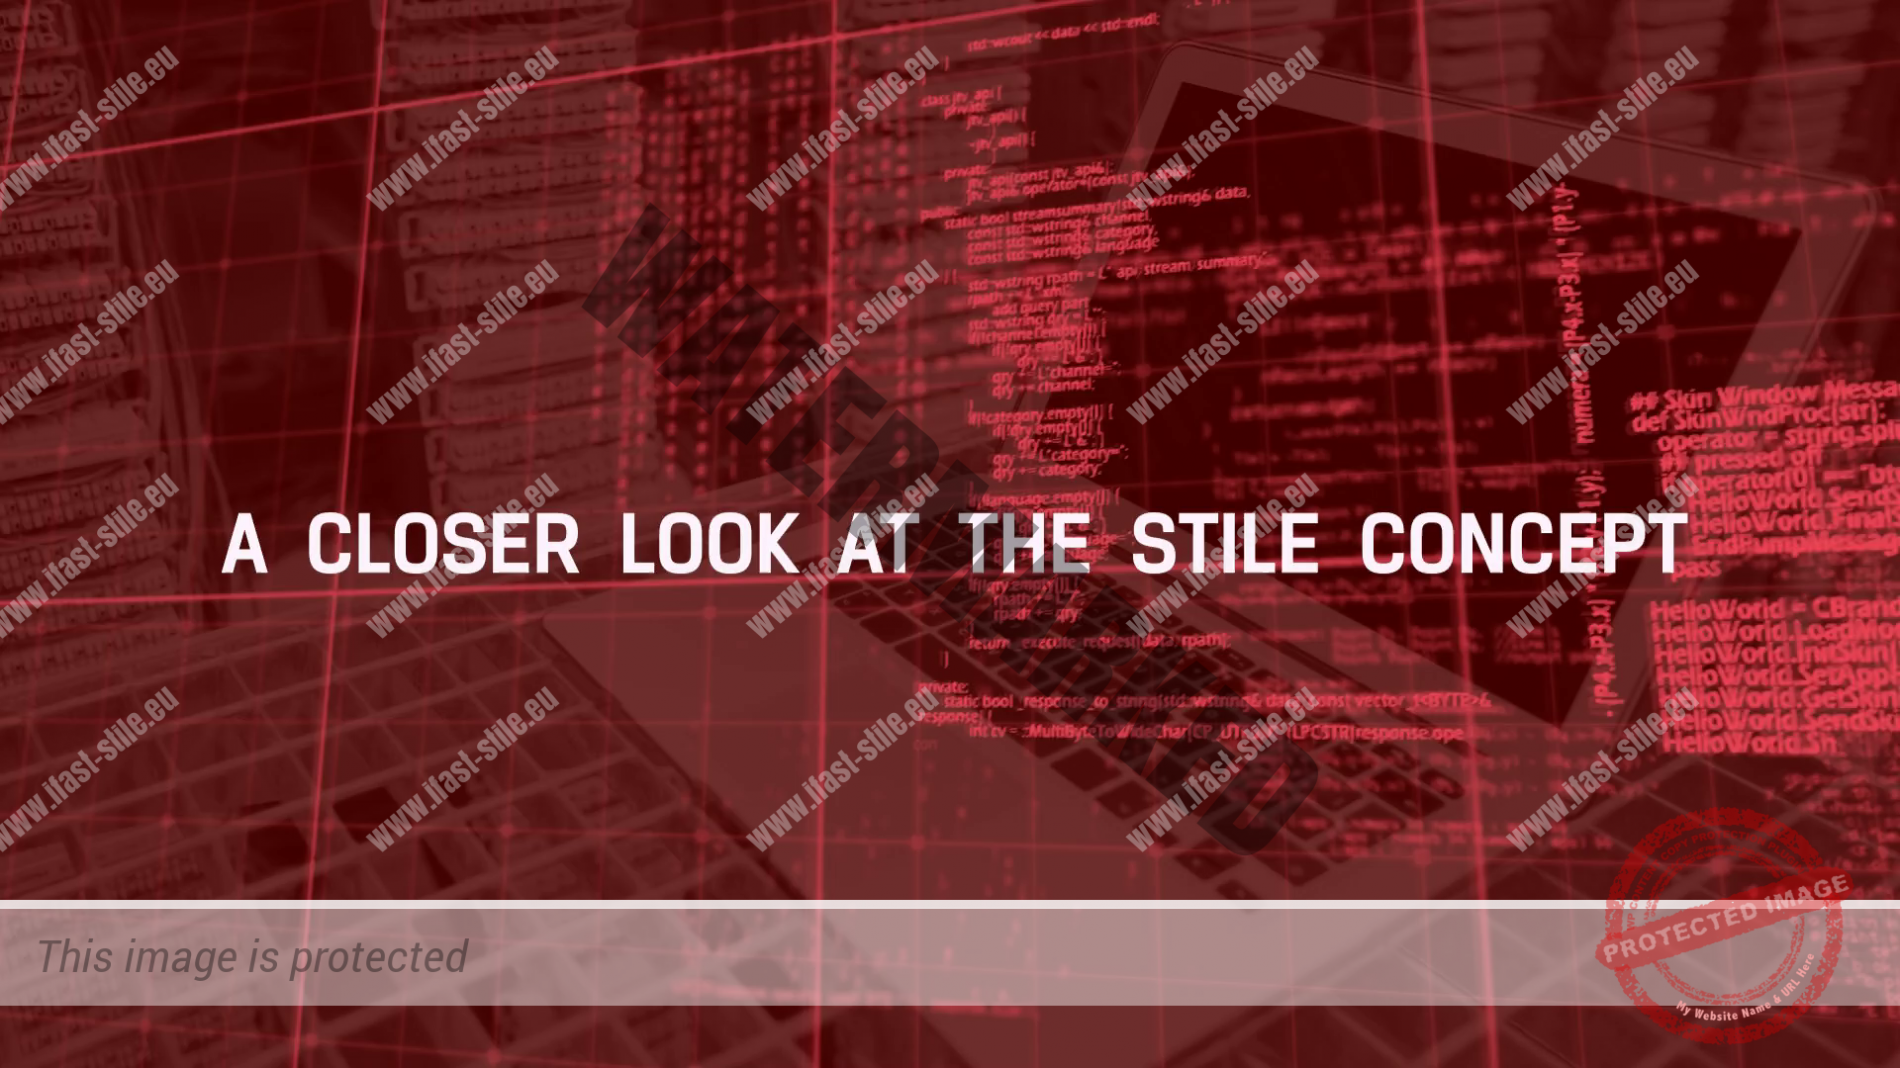 A CLOSER LOOK AT THE STILE CONCEPT